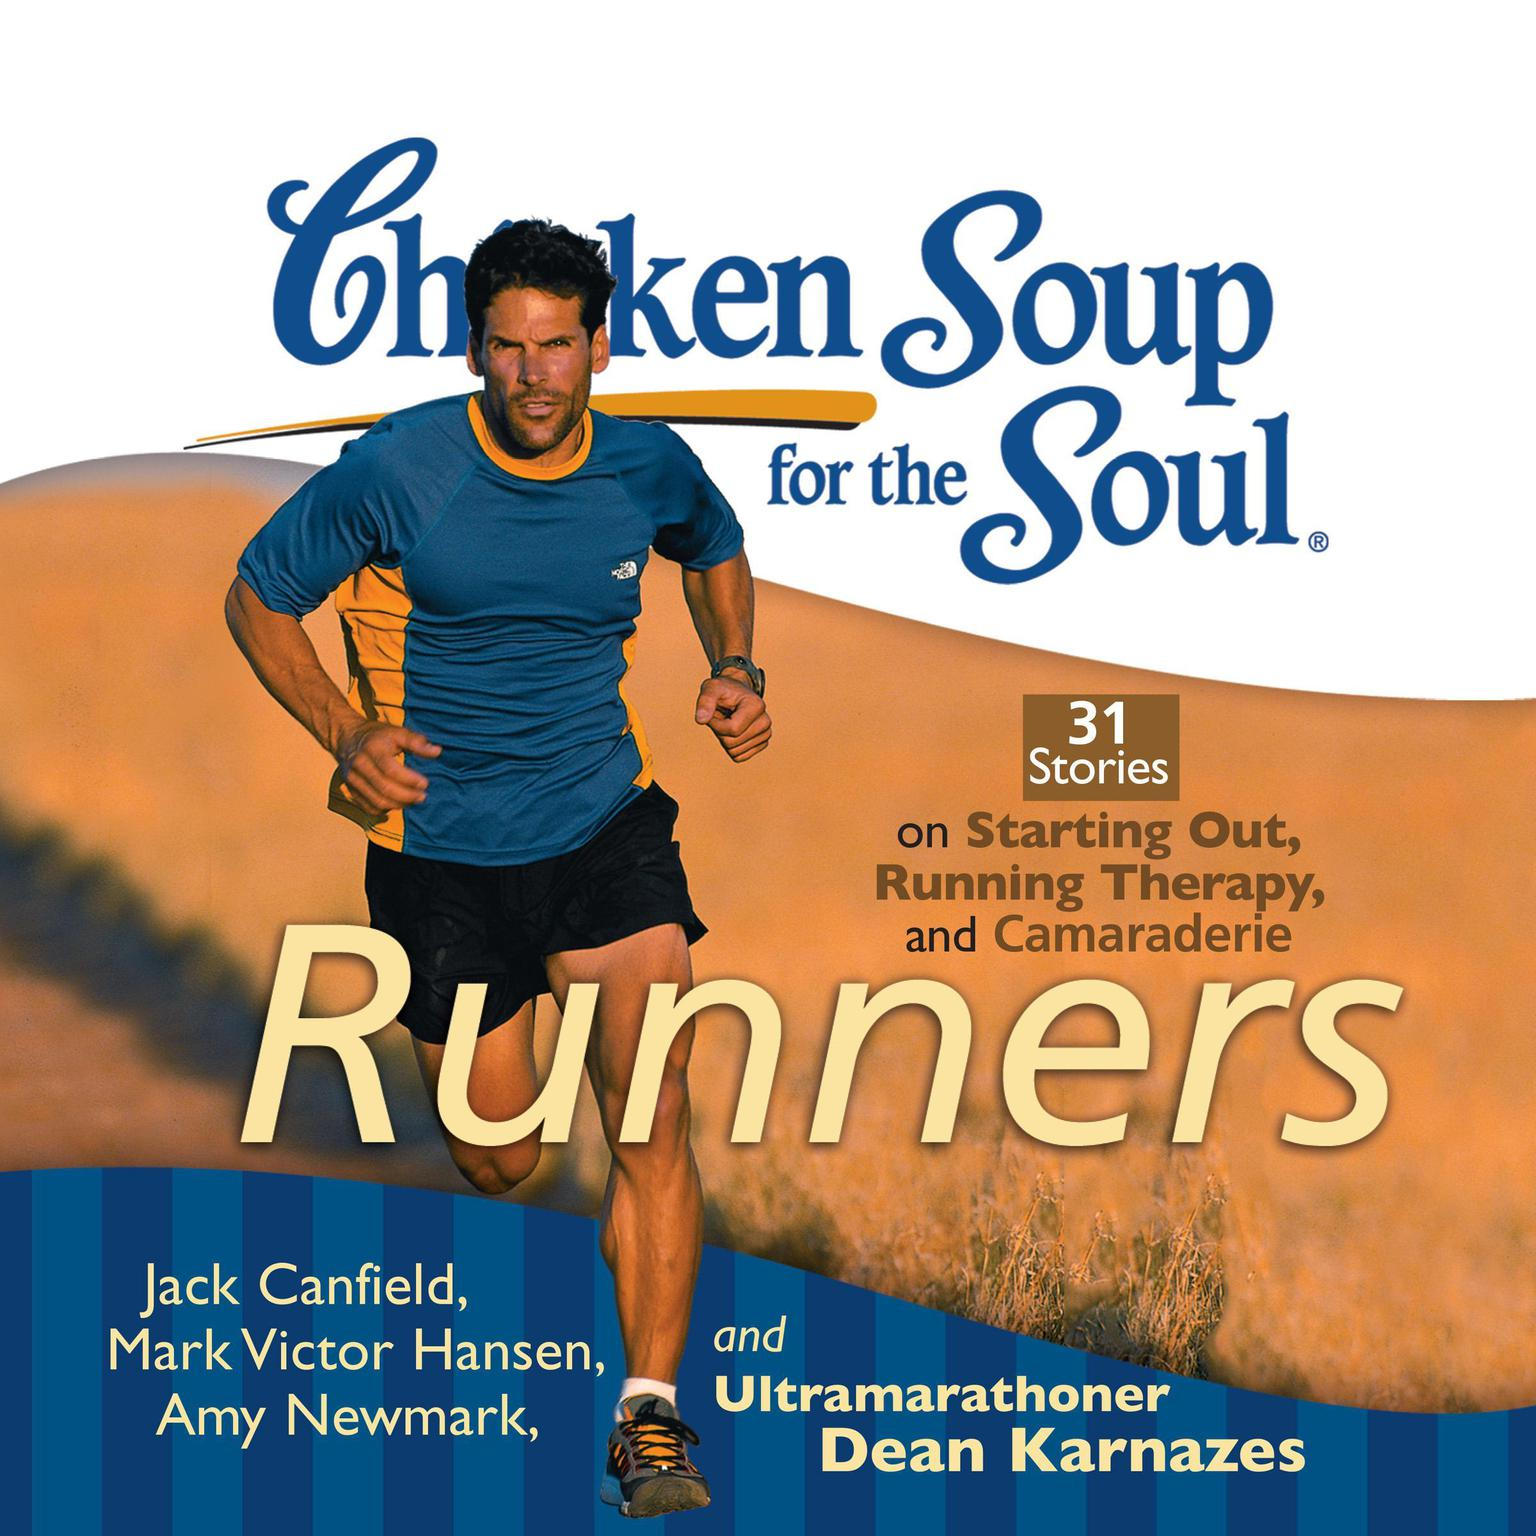 Printable Chicken Soup for the Soul: Runners - 31 Stories on Starting Out, Running Therapy, and Camaraderie Audiobook Cover Art